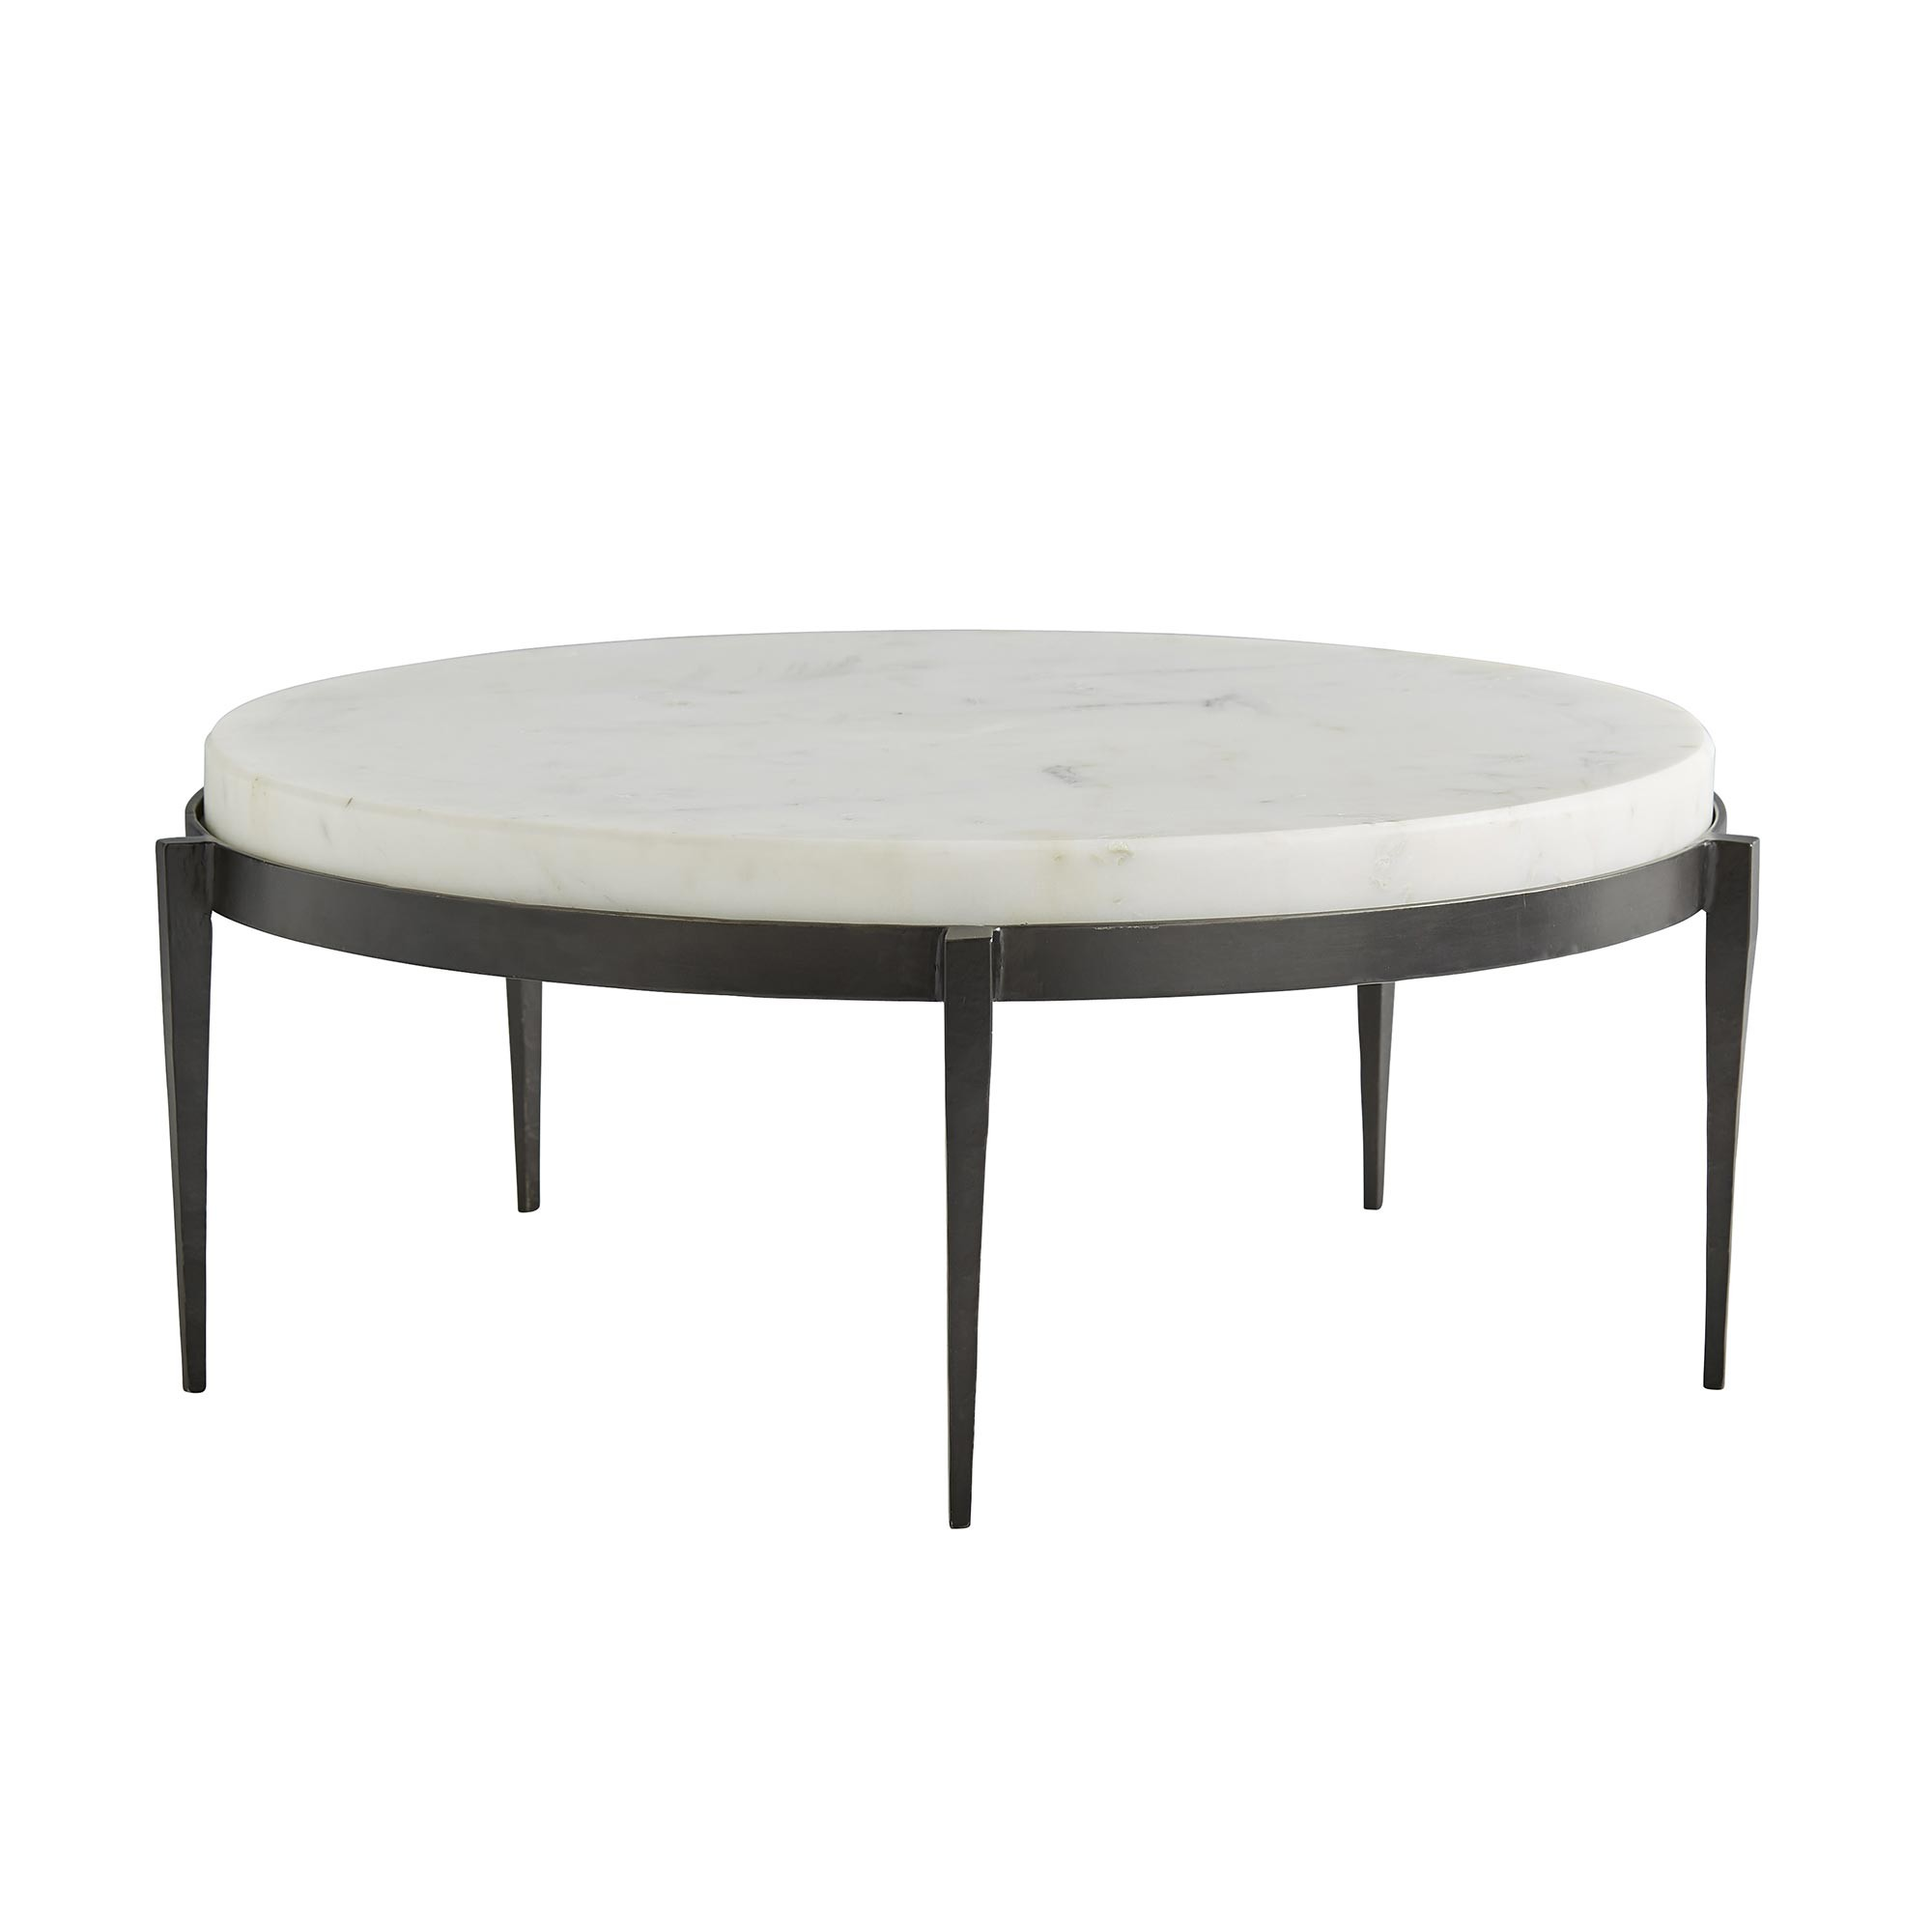 Kelsie Cocktail Table In 2020 Round Coffee Table Modern Iron Coffee Table Modern Coffee Tables